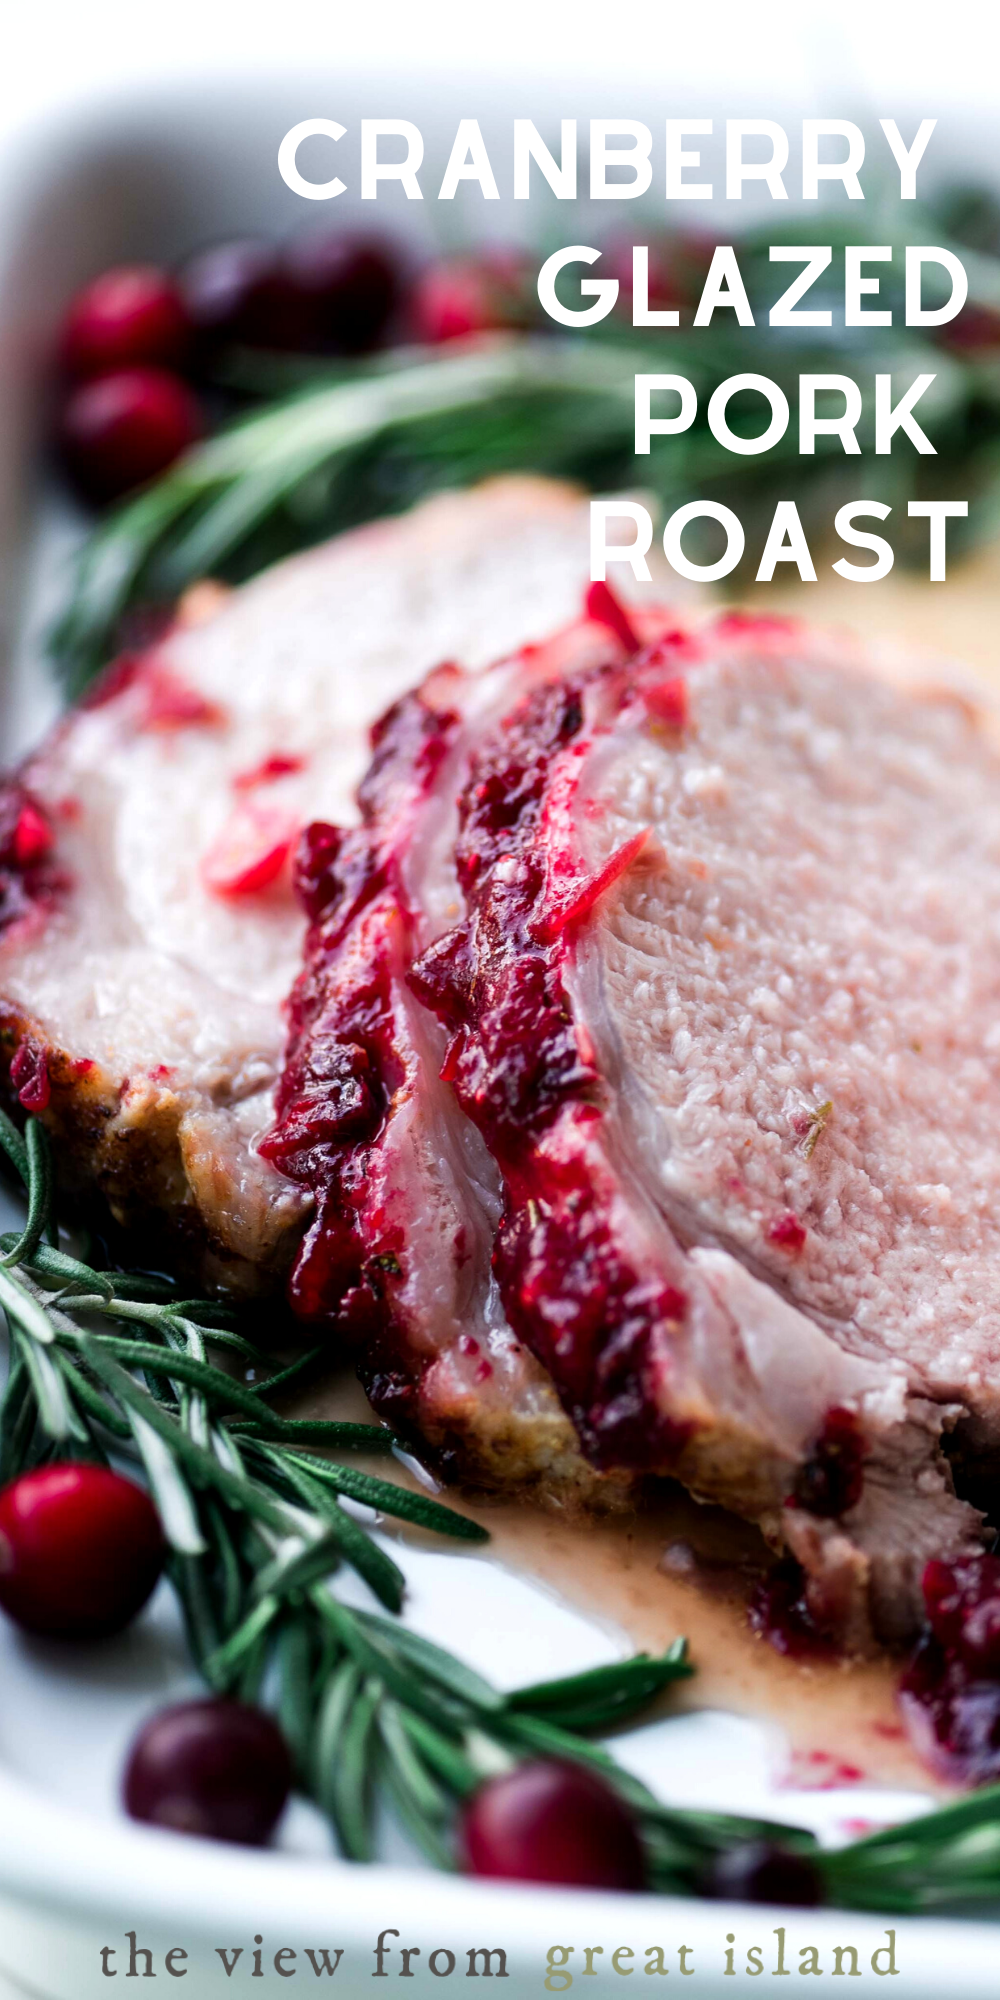 My Cranberry Glazed Pork Roast is a succulent pork loin with a rosemary mustard rub, and topped with a sweet tart cranberry orange glaze, ready in an hour. #pork #cranberry #dinner #recipe #christmasdinner